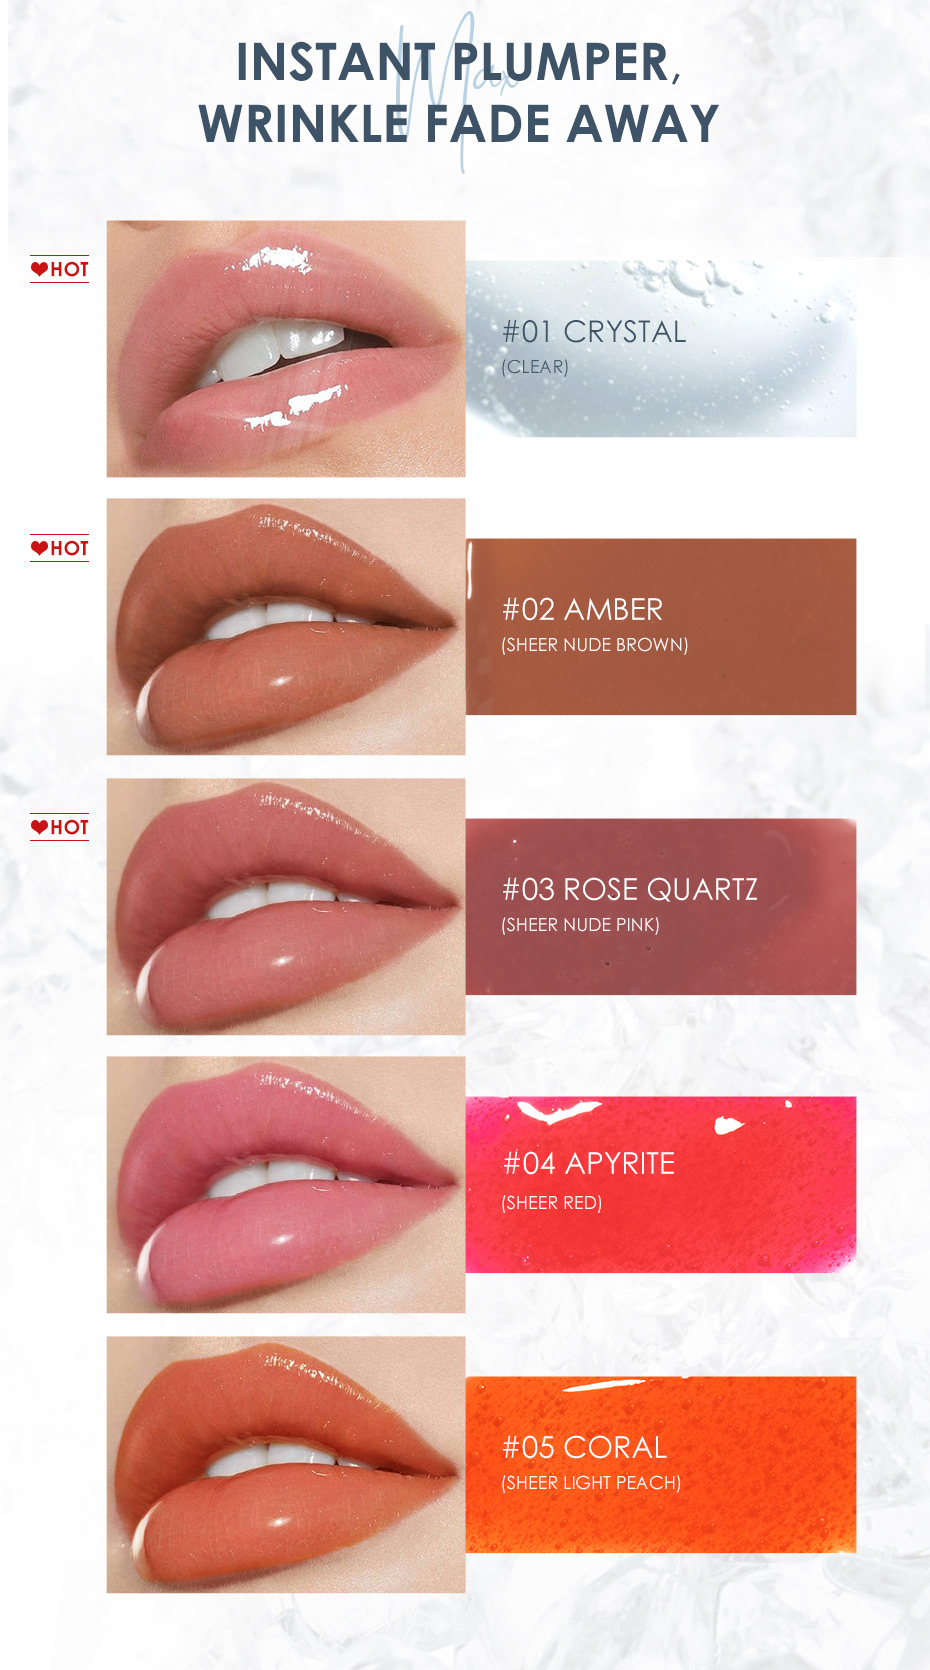 FOCALLURE High Shine Lip Gloss PLUMPMAX Nourish Soft & Smooth Lip Makeup non-Sticky formula Lipgloss